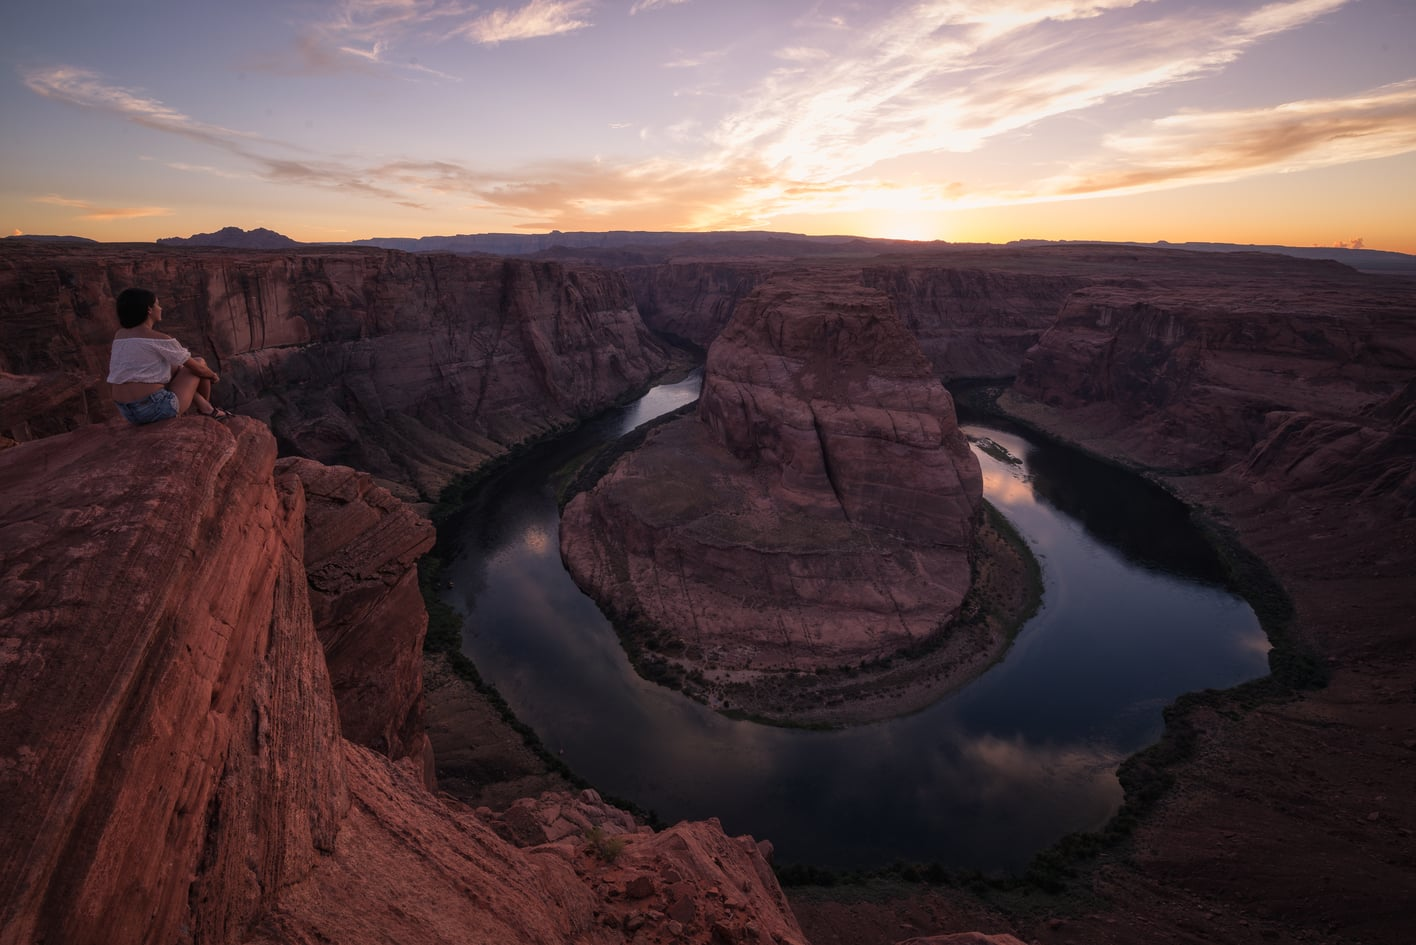 horseshoe bend at sunset, girl sit on the cliff